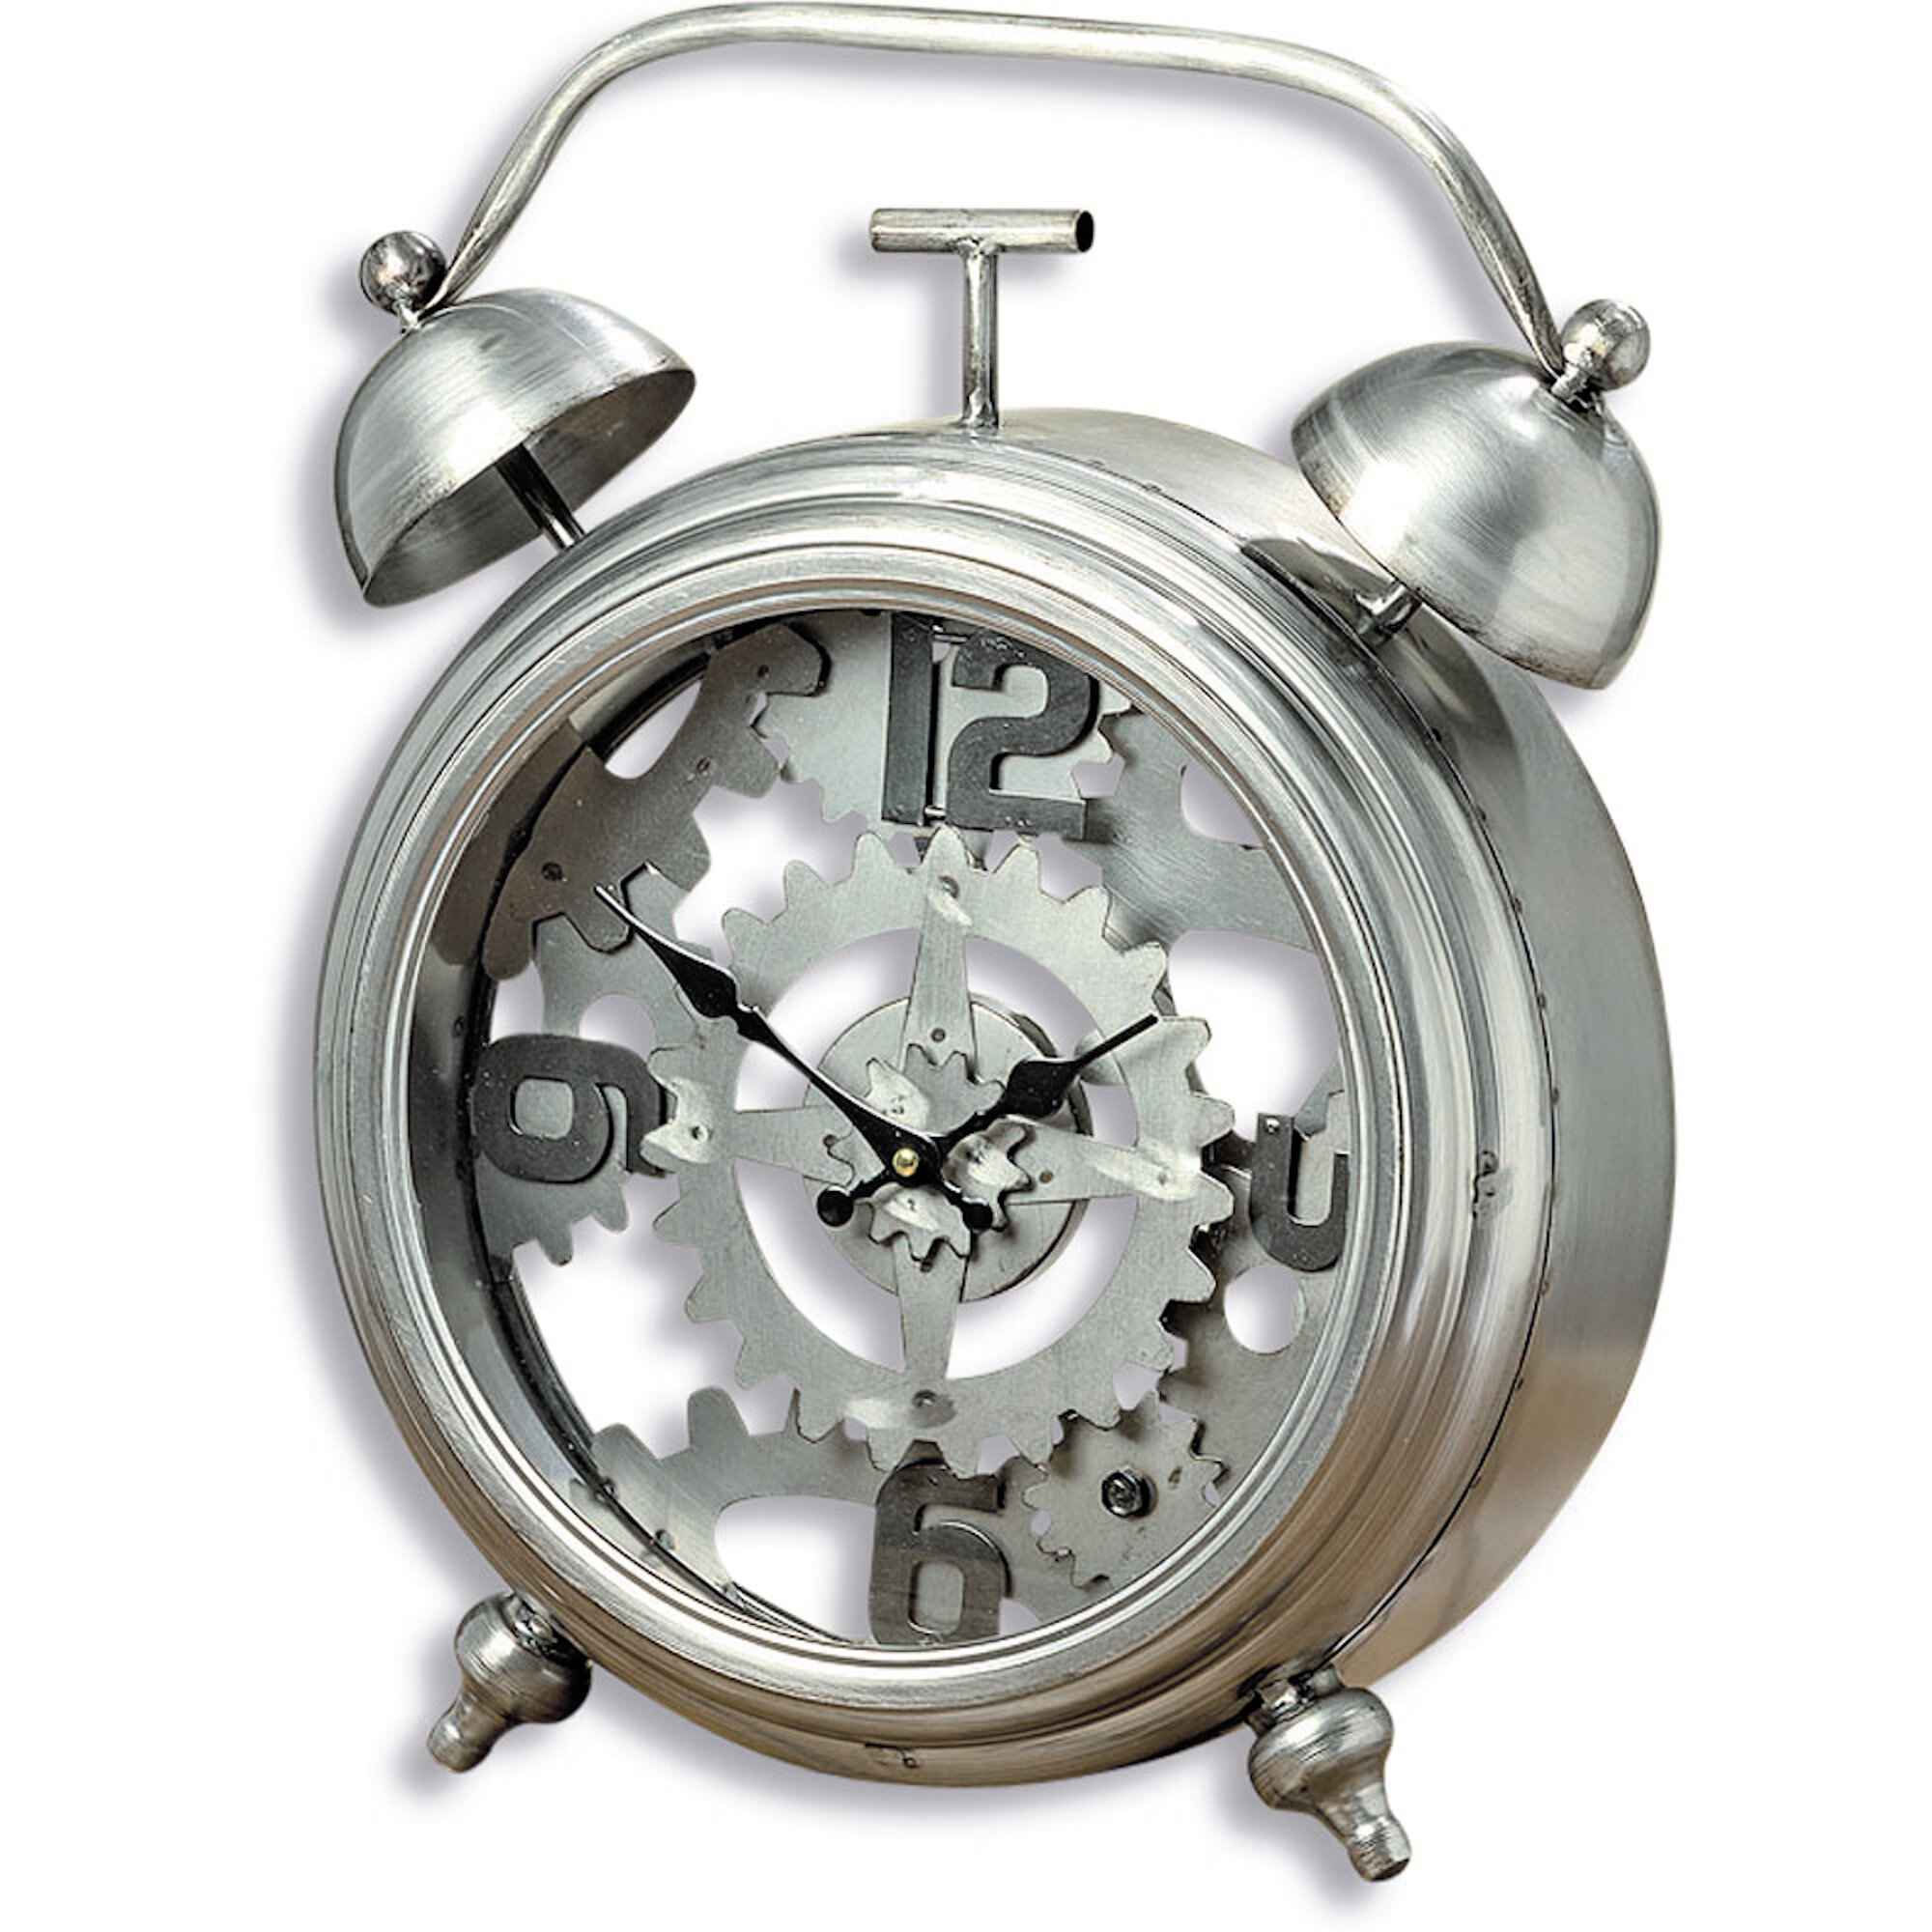 Williston Forge The Exposed Gears Vintage Style Alarm Clock 1 Ft 6